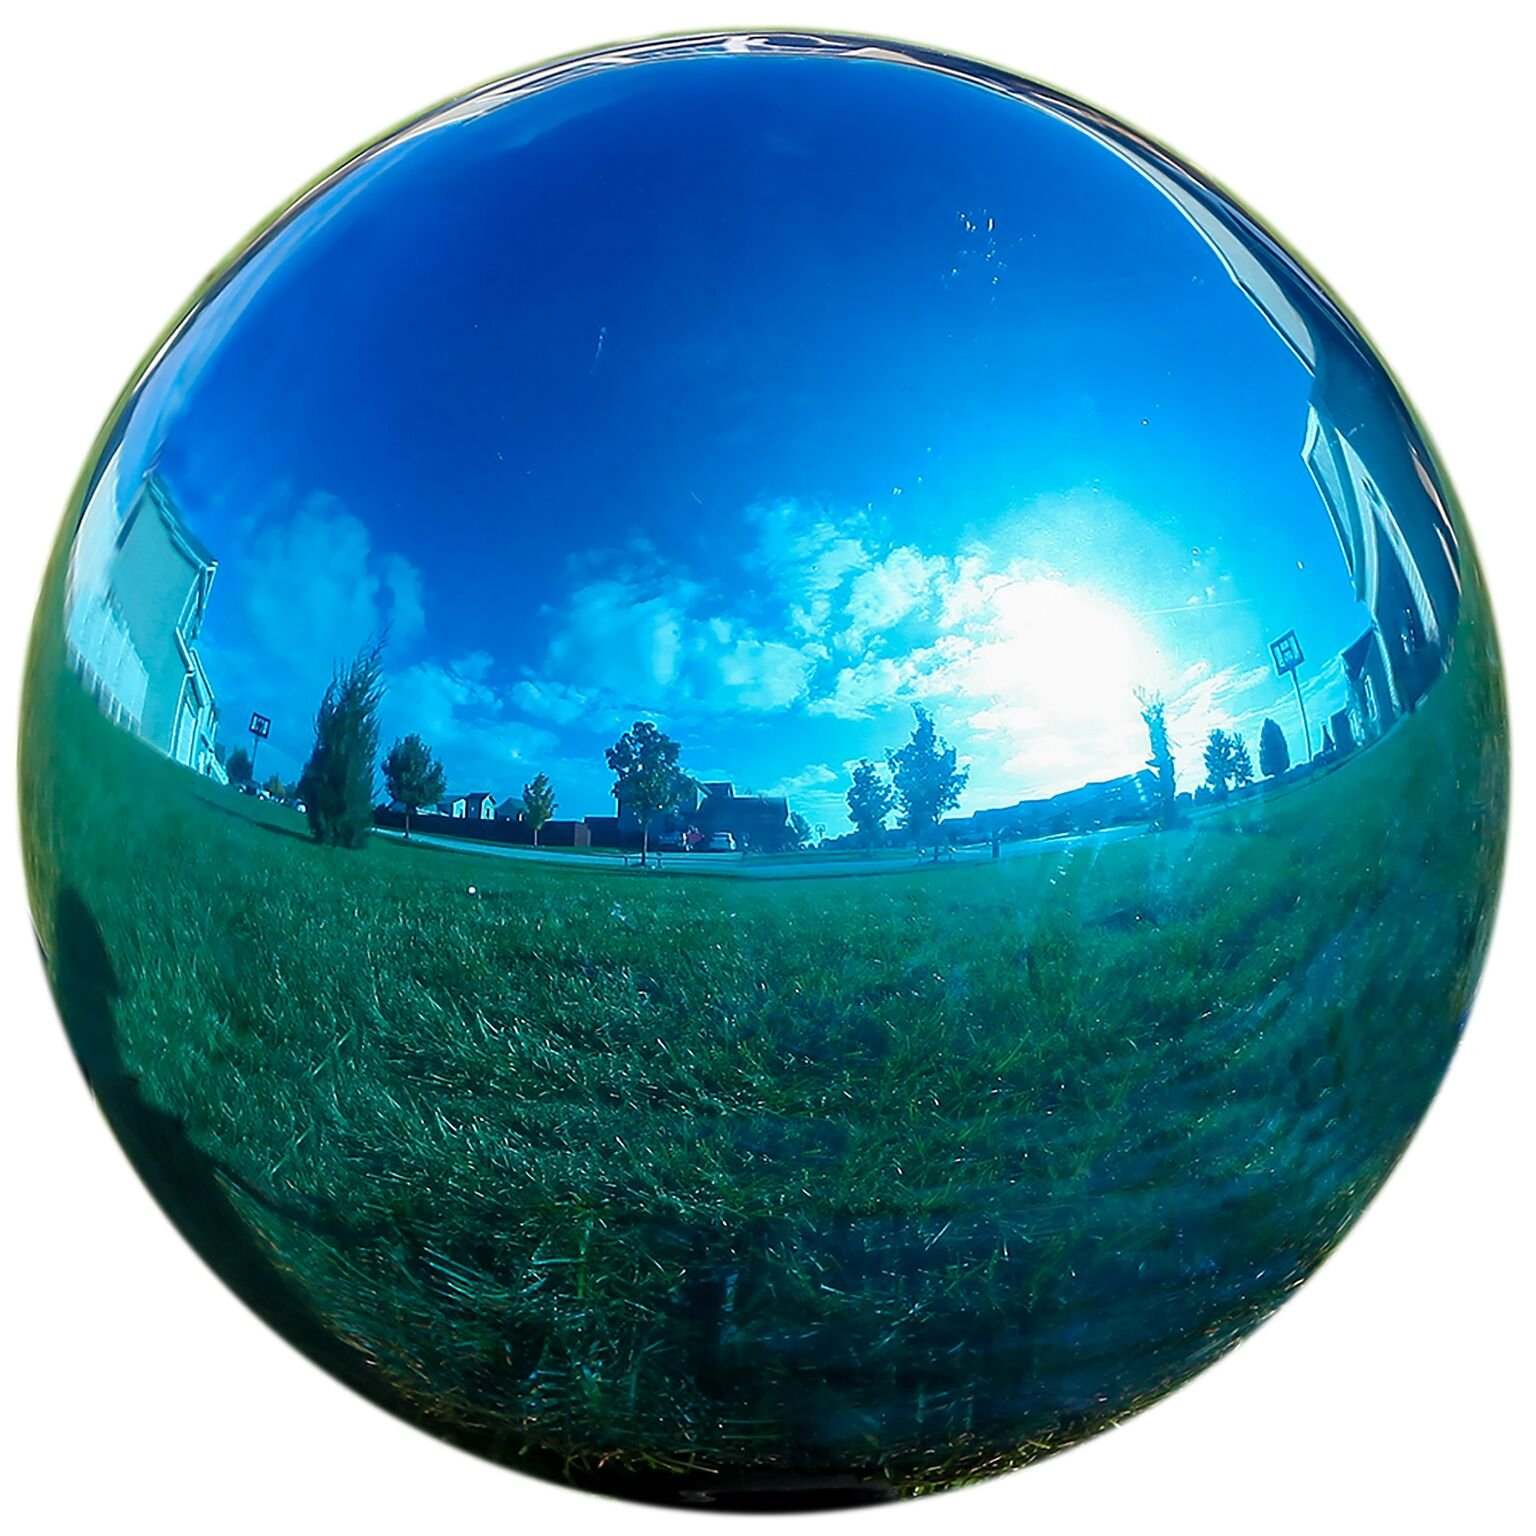 Lily's Home Glass Gazing Mirror Ball, Colorful and Shiny Addition to Any Garden or Home, Ideal As a Housewarming Gift, Sparkling Blue (10 Inches Diameter)